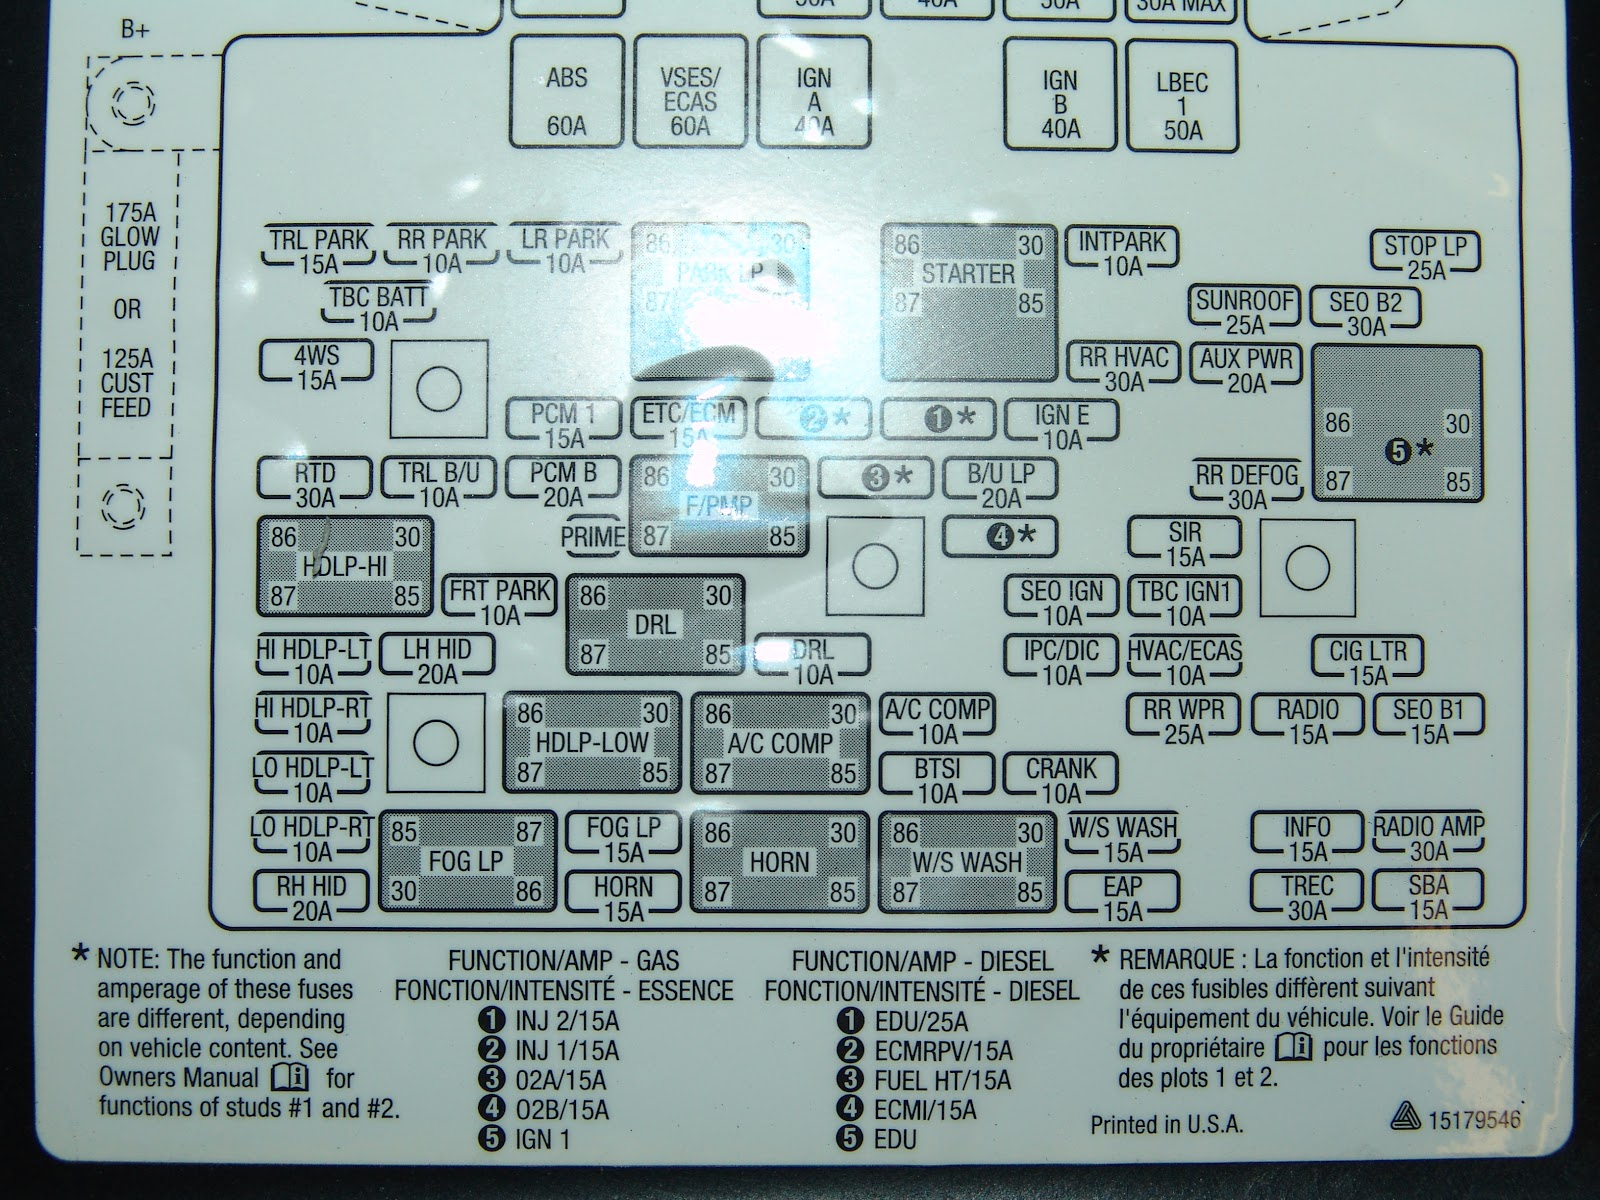 2000 chevy impala fuel gauge wiring diagram html with This 2005 Chevrolet Suburban Instrument on 04 Chevy Malibu Instrument Panel Cluster Wiring Diagram additionally 131294 Ez Topic Finder moreover Chevrolet Chevy Van 4 3 1993 Specs And Images also Chevy Evap System Diagram besides 8fvev Chevrolet Suburban 1500 Lt Replacing Fuel Pump.